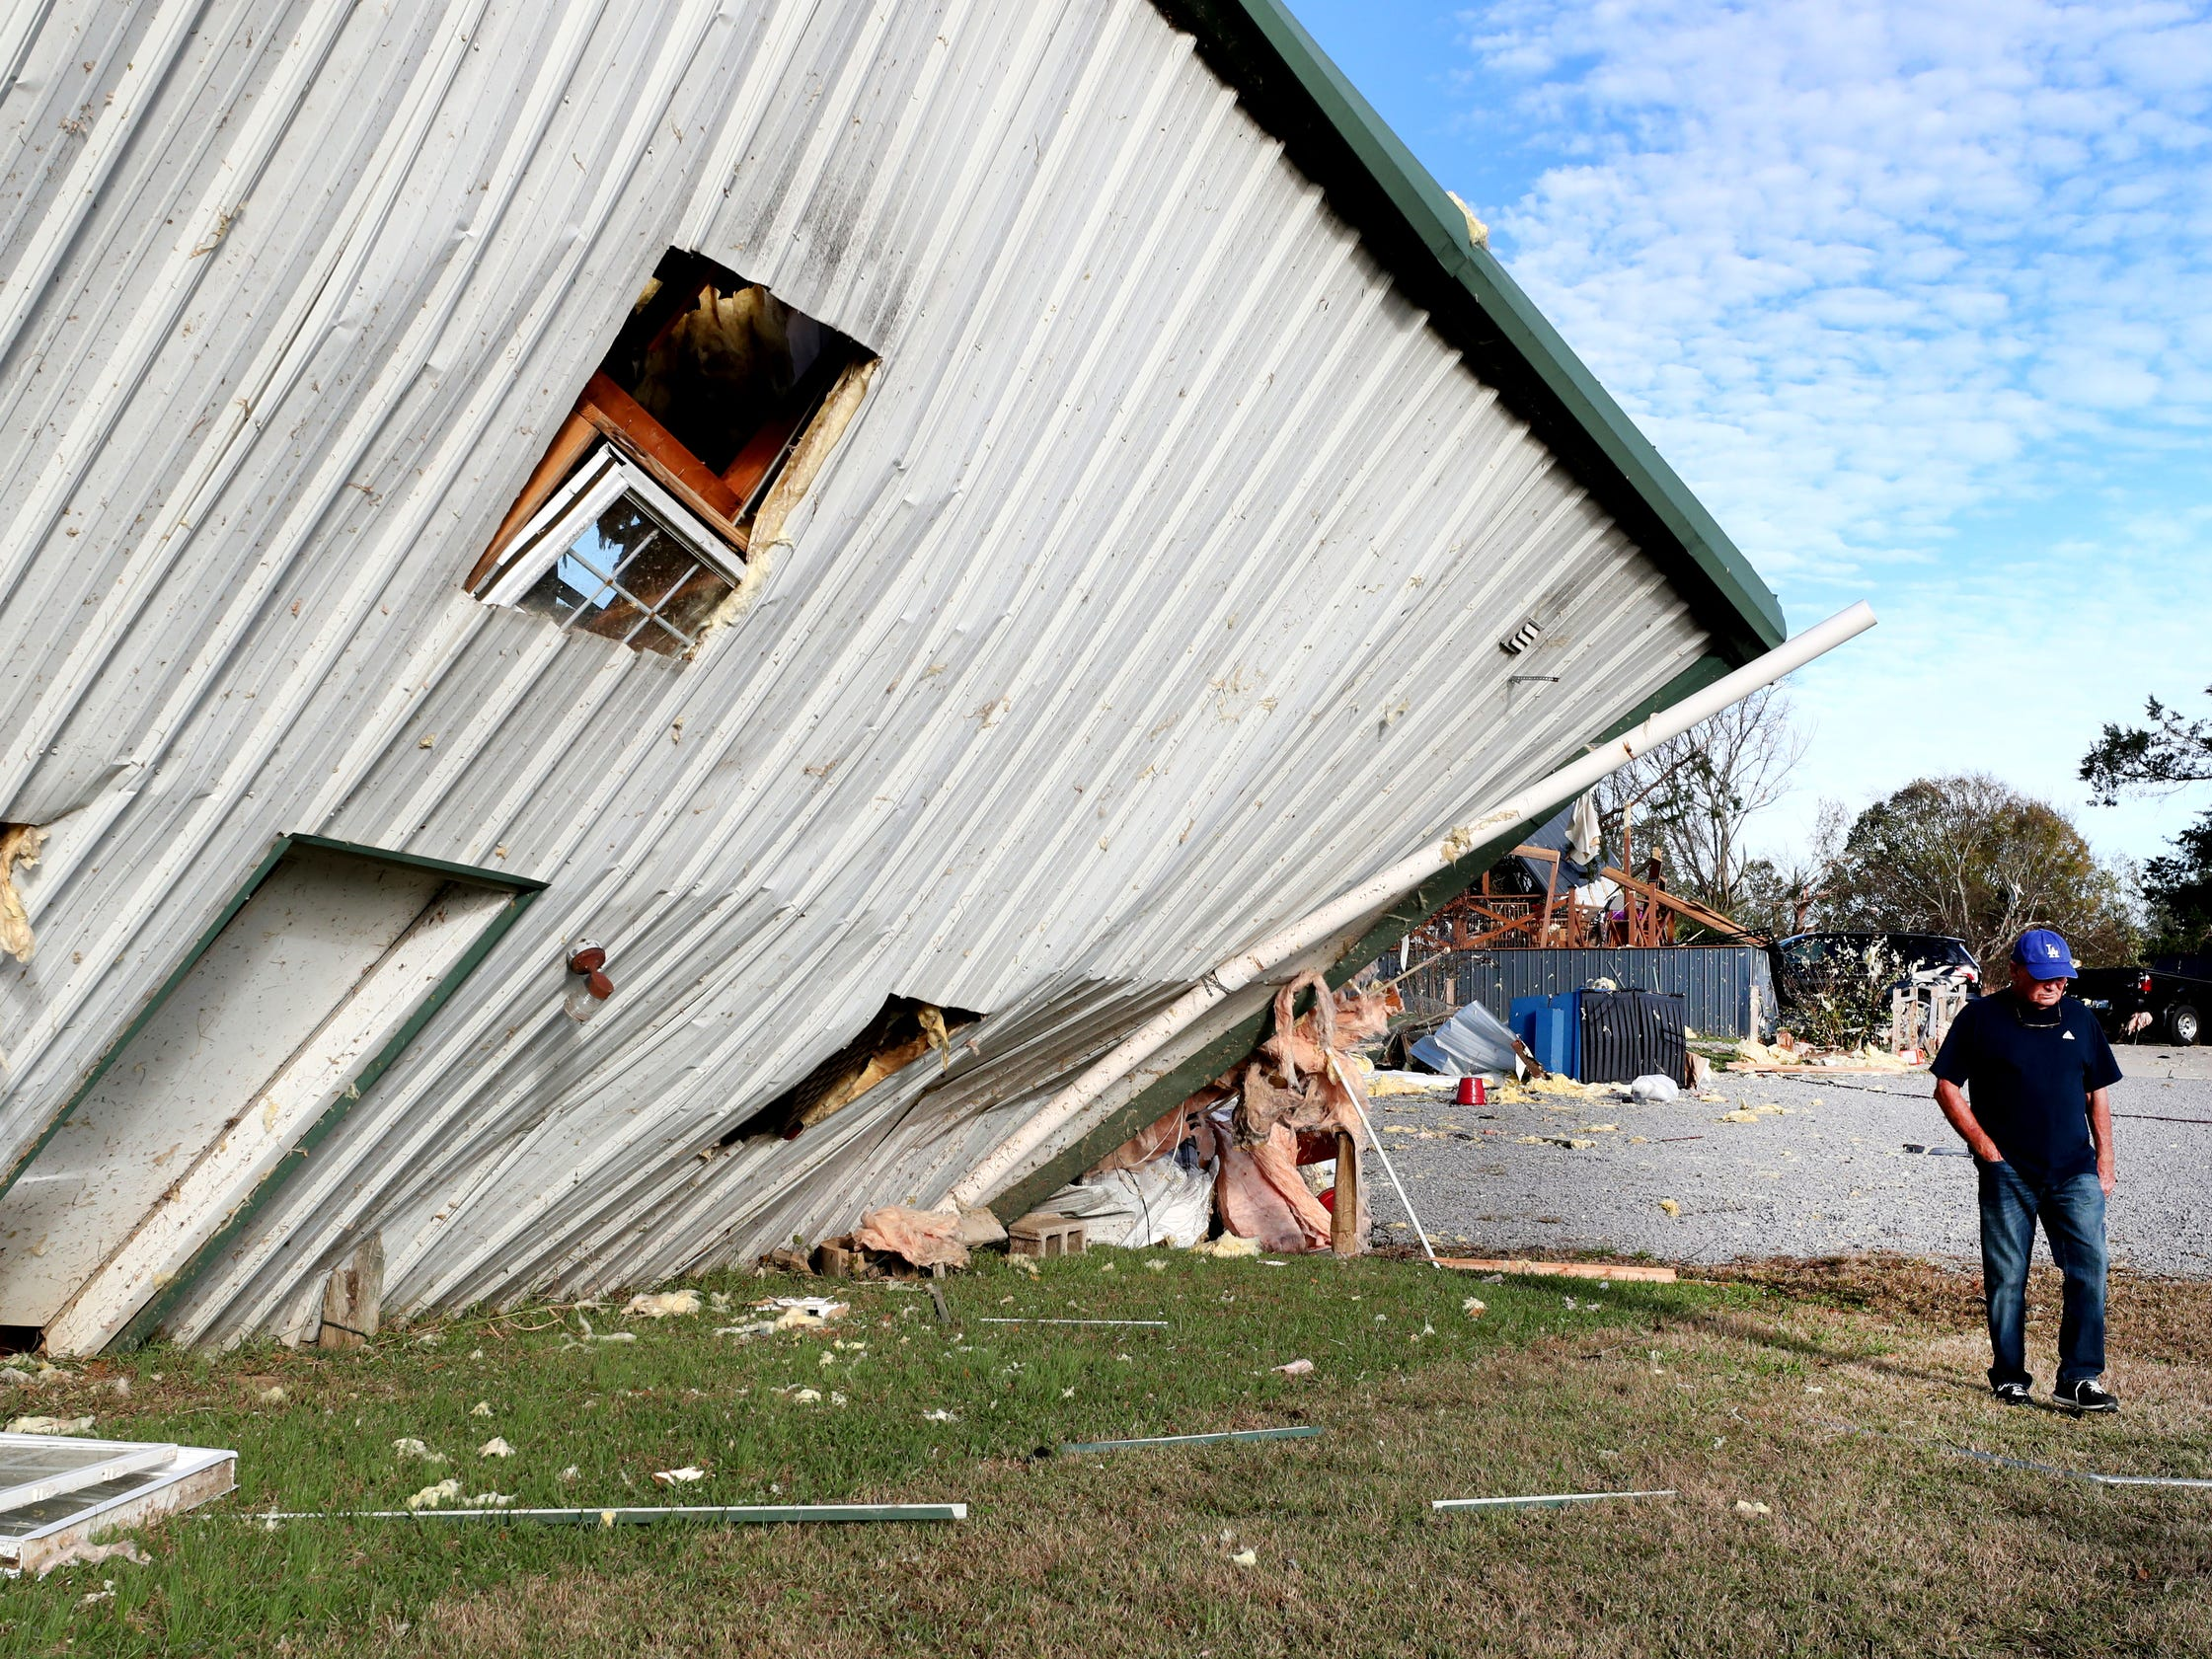 Billy Grimes Sr. shows off tornado damage to the property of his friends Hank and Ava Jordan at the Jordan home along Rock Springs Midland Road in Christiana, Tenn. on Tuesday, Nov. 6, 2018.